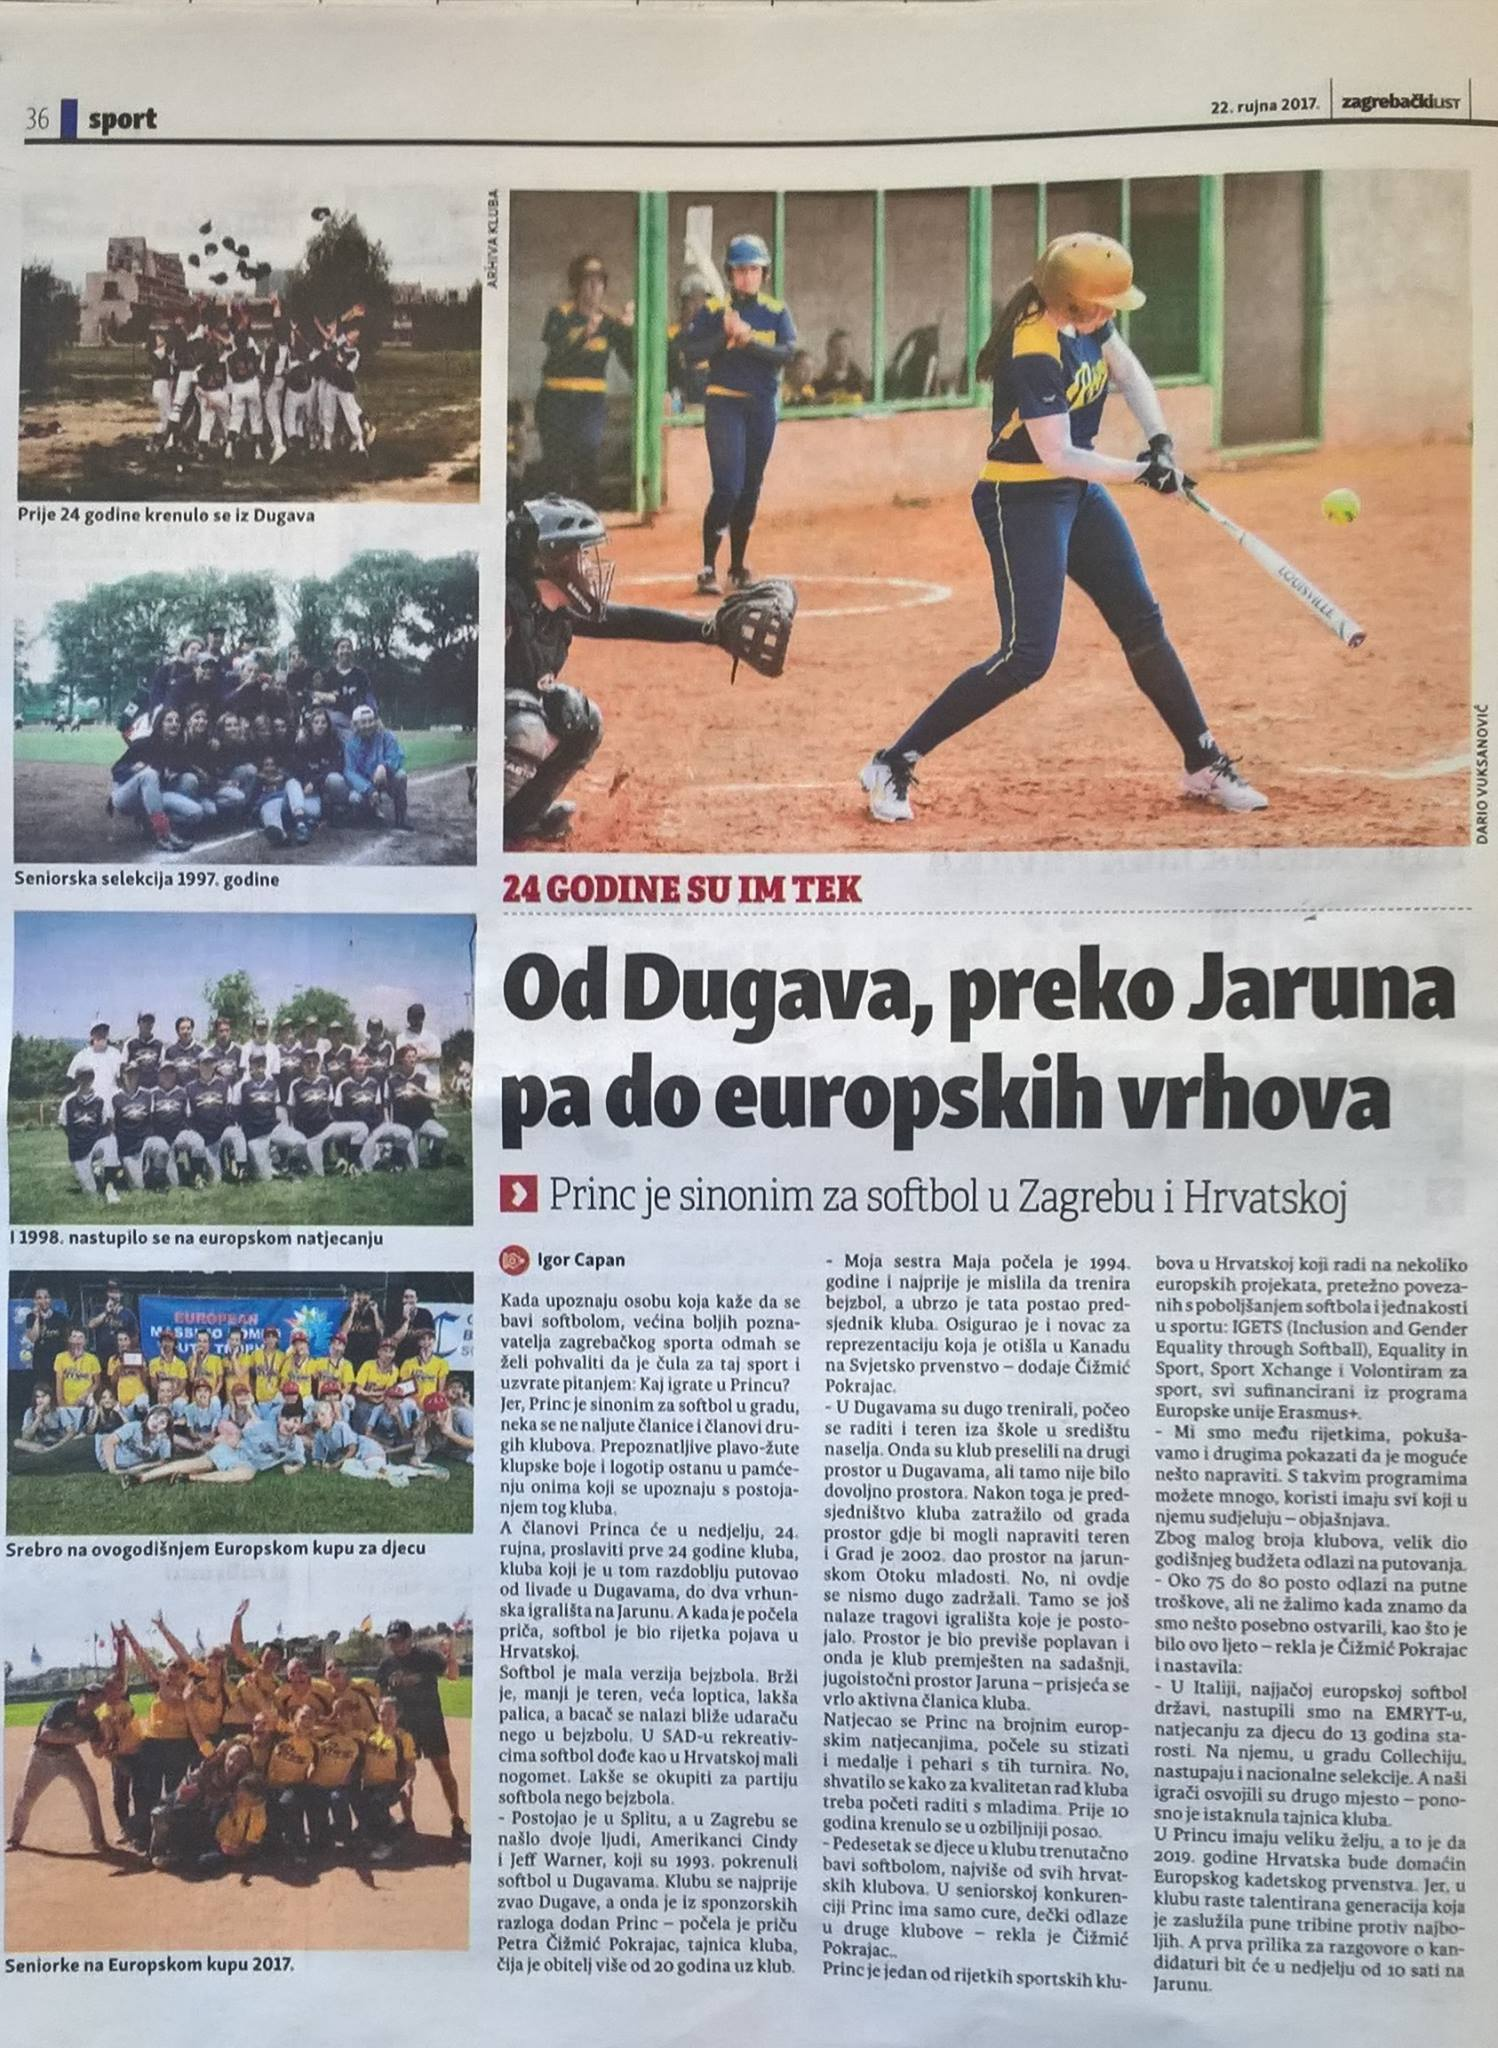 http://softball-princ.hr/wp-content/uploads/Softball-novine-ZAGREBACKI-list.jpg